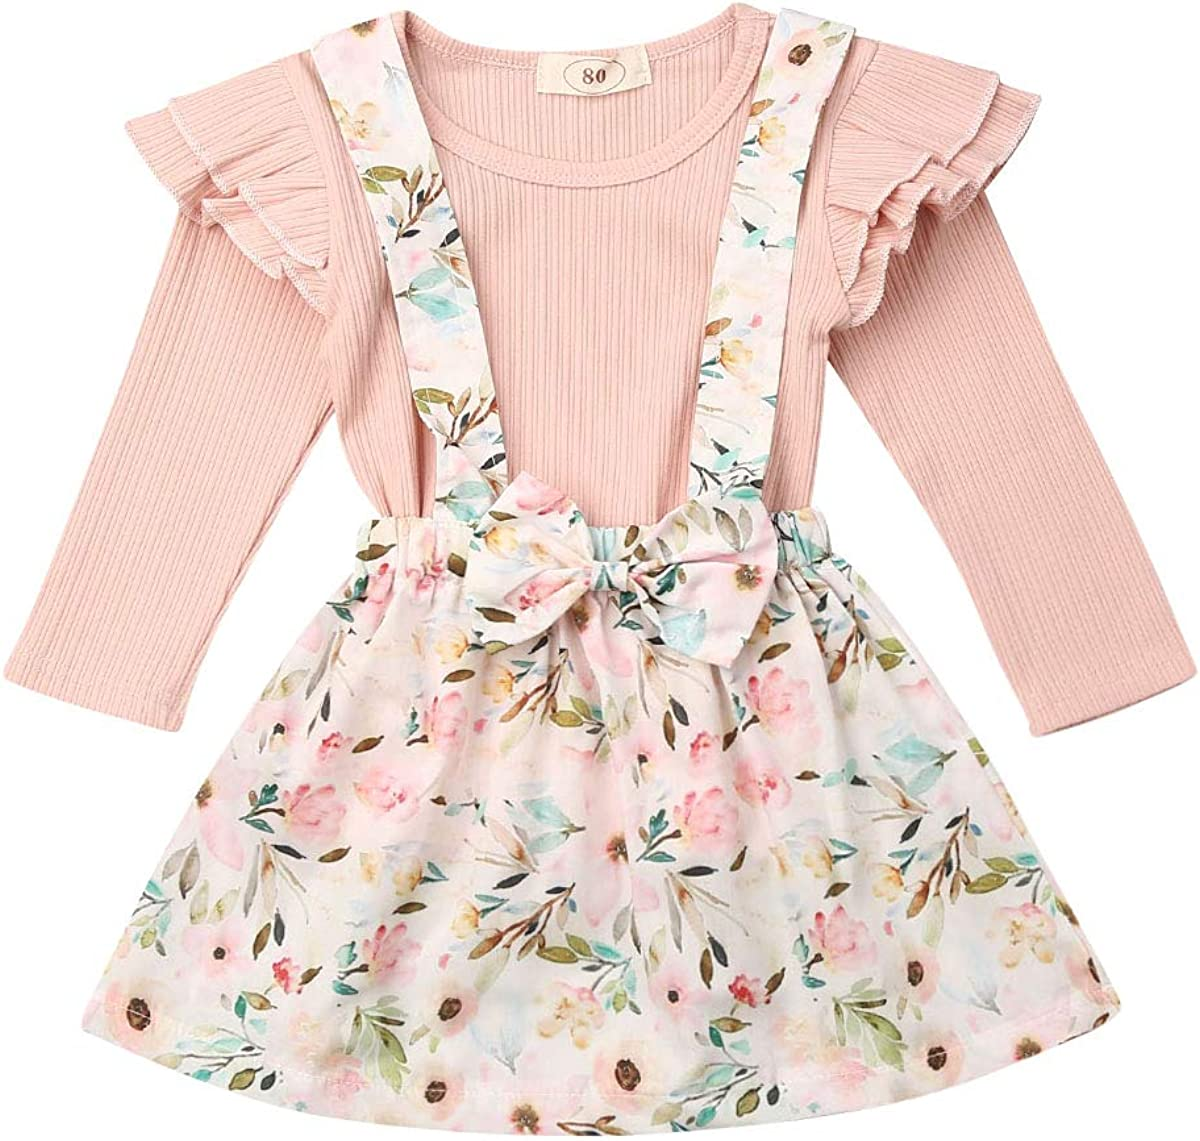 Toddler Newborn New products world's highest quality popular Baby Girls Ruffle Sleeveless Round Quality inspection T-Shirt Neck